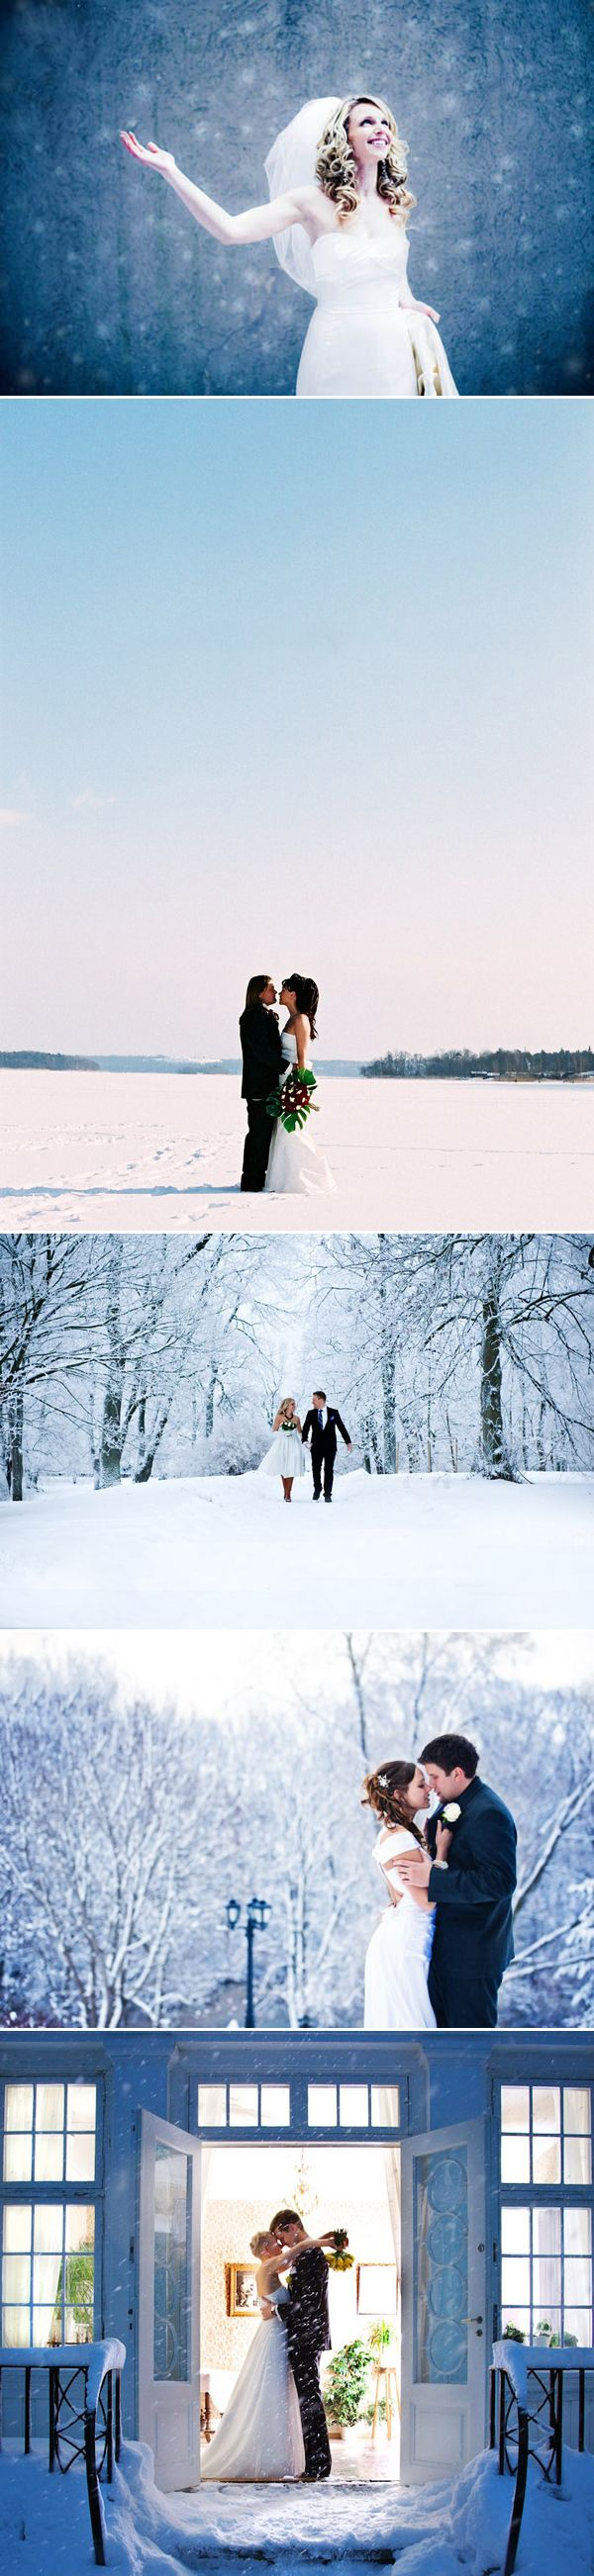 Having a winter wedding isn't the most popular idea, but we are here today to inspire you how dreamy a winter wedding can be.  There is something magical about the environment being covered in fresh snow.  Let the romantic wedding photos below bring you just the warmth and sweetness you need in this lovely season. …